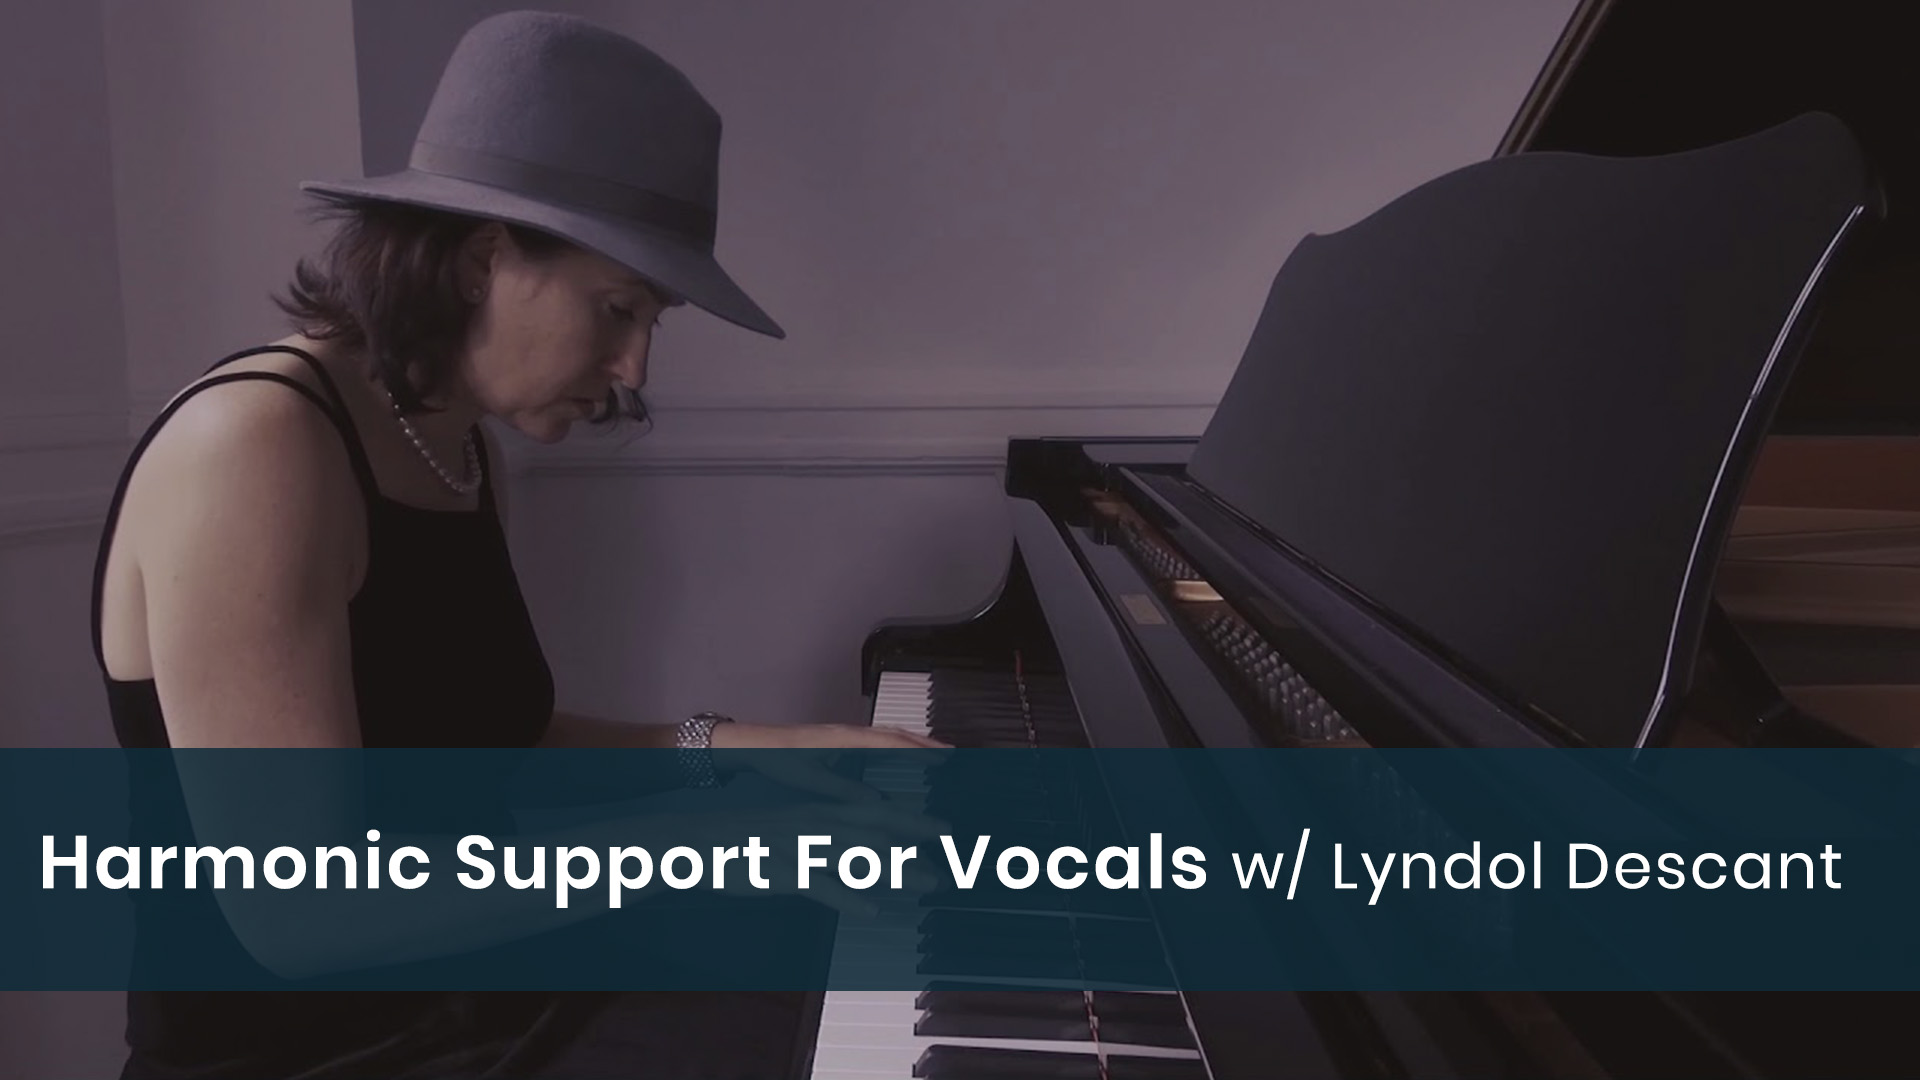 Harmonic Support For Vocals